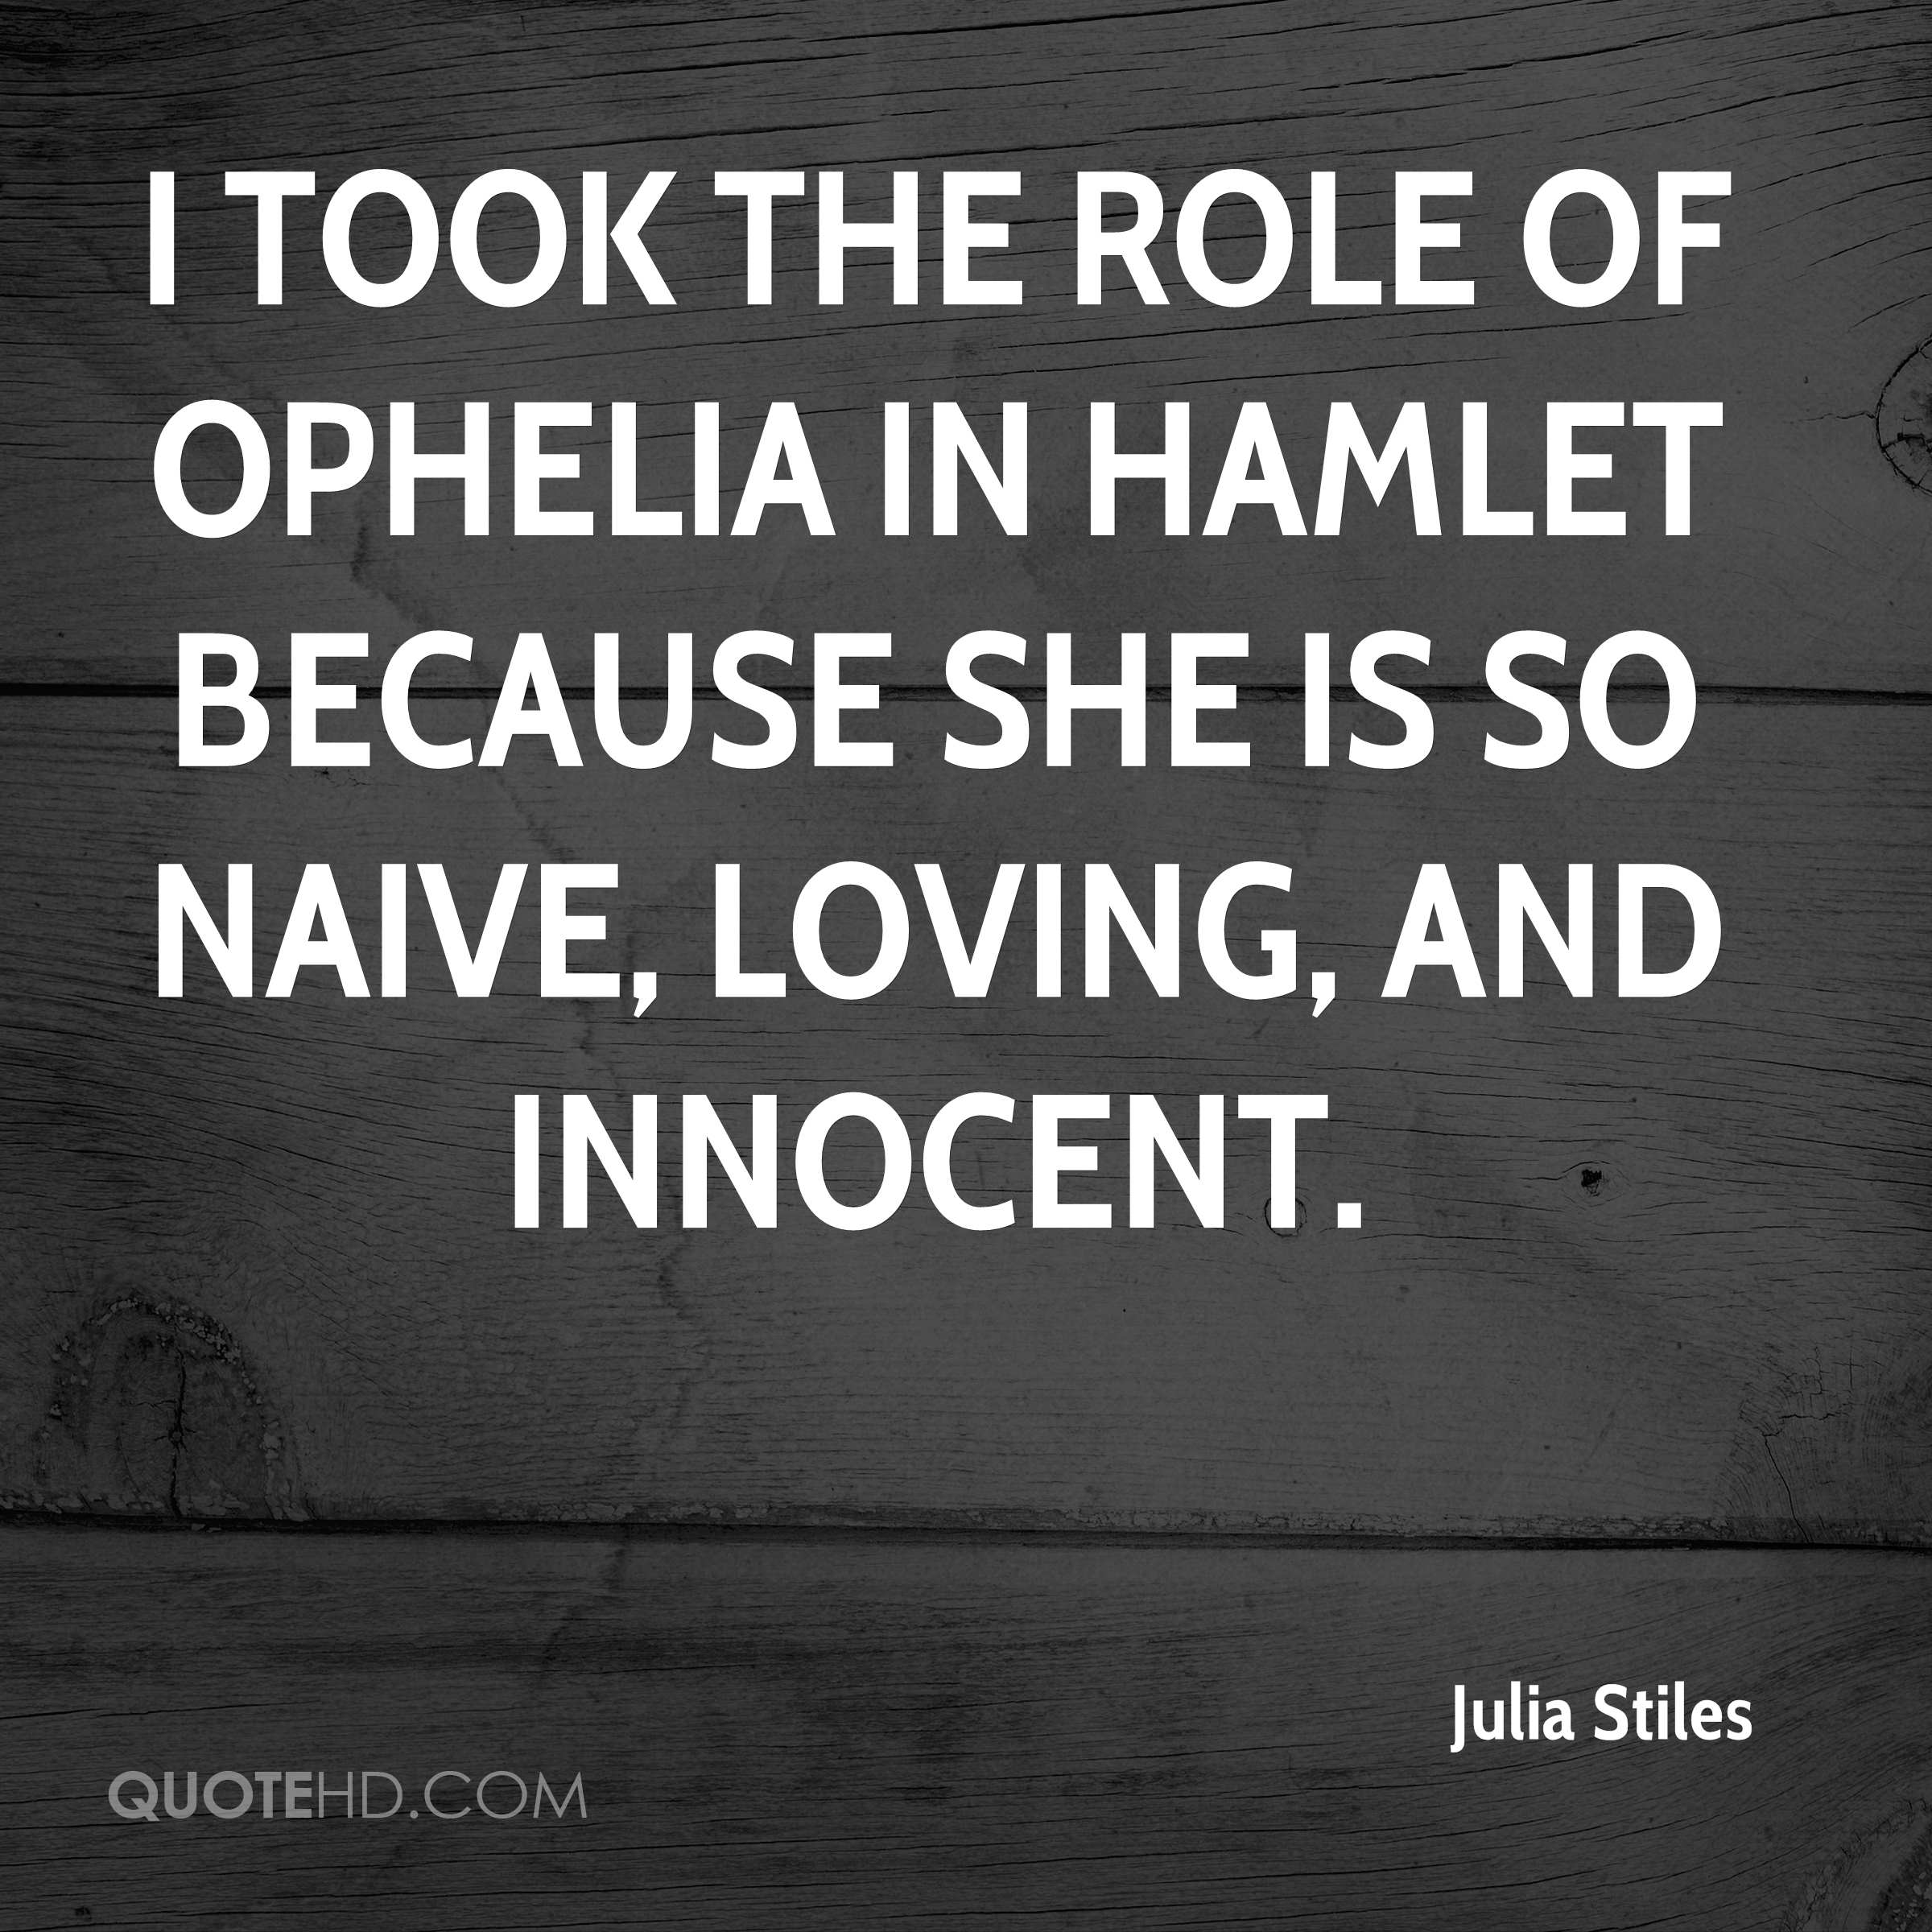 did hamlet really love ophelia essay Hamlet's love for ophelia shakespeare's hamlet strikes many literary chords and themes it primarily chronicles a quest for revenge, political intrigue and a slow descent into madness but underneath all the drama, hatred and back-stabbing plots.